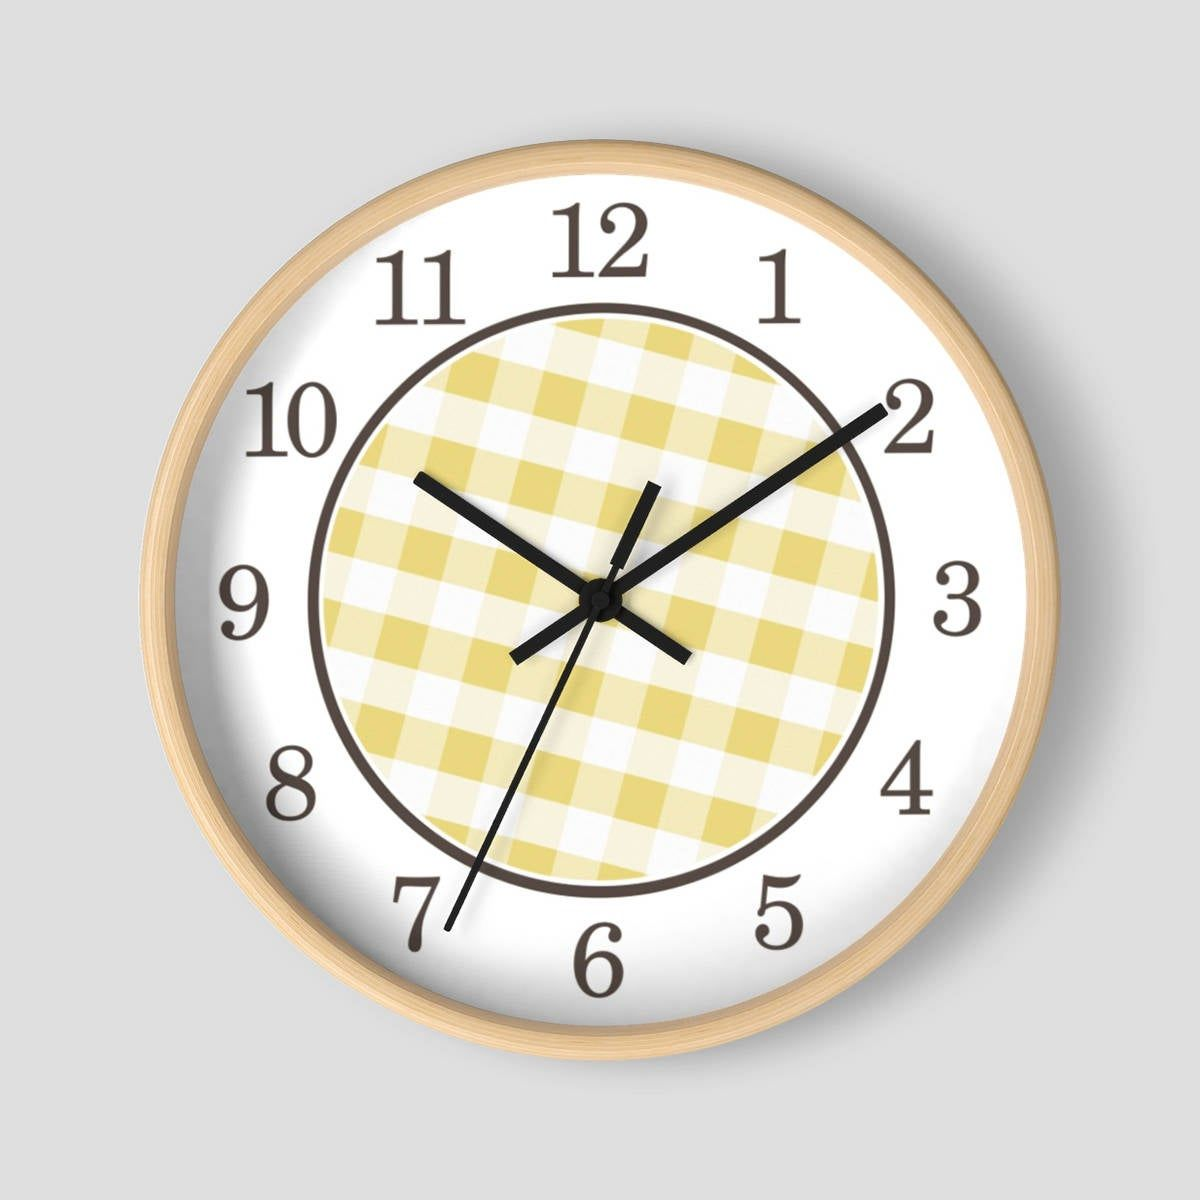 Yellow Gingham Wall Clock Pattern In Yellow And White With Wood Frame 10 Inch Round Clock Made To Order Clock Wall Clock Wall Clock Design